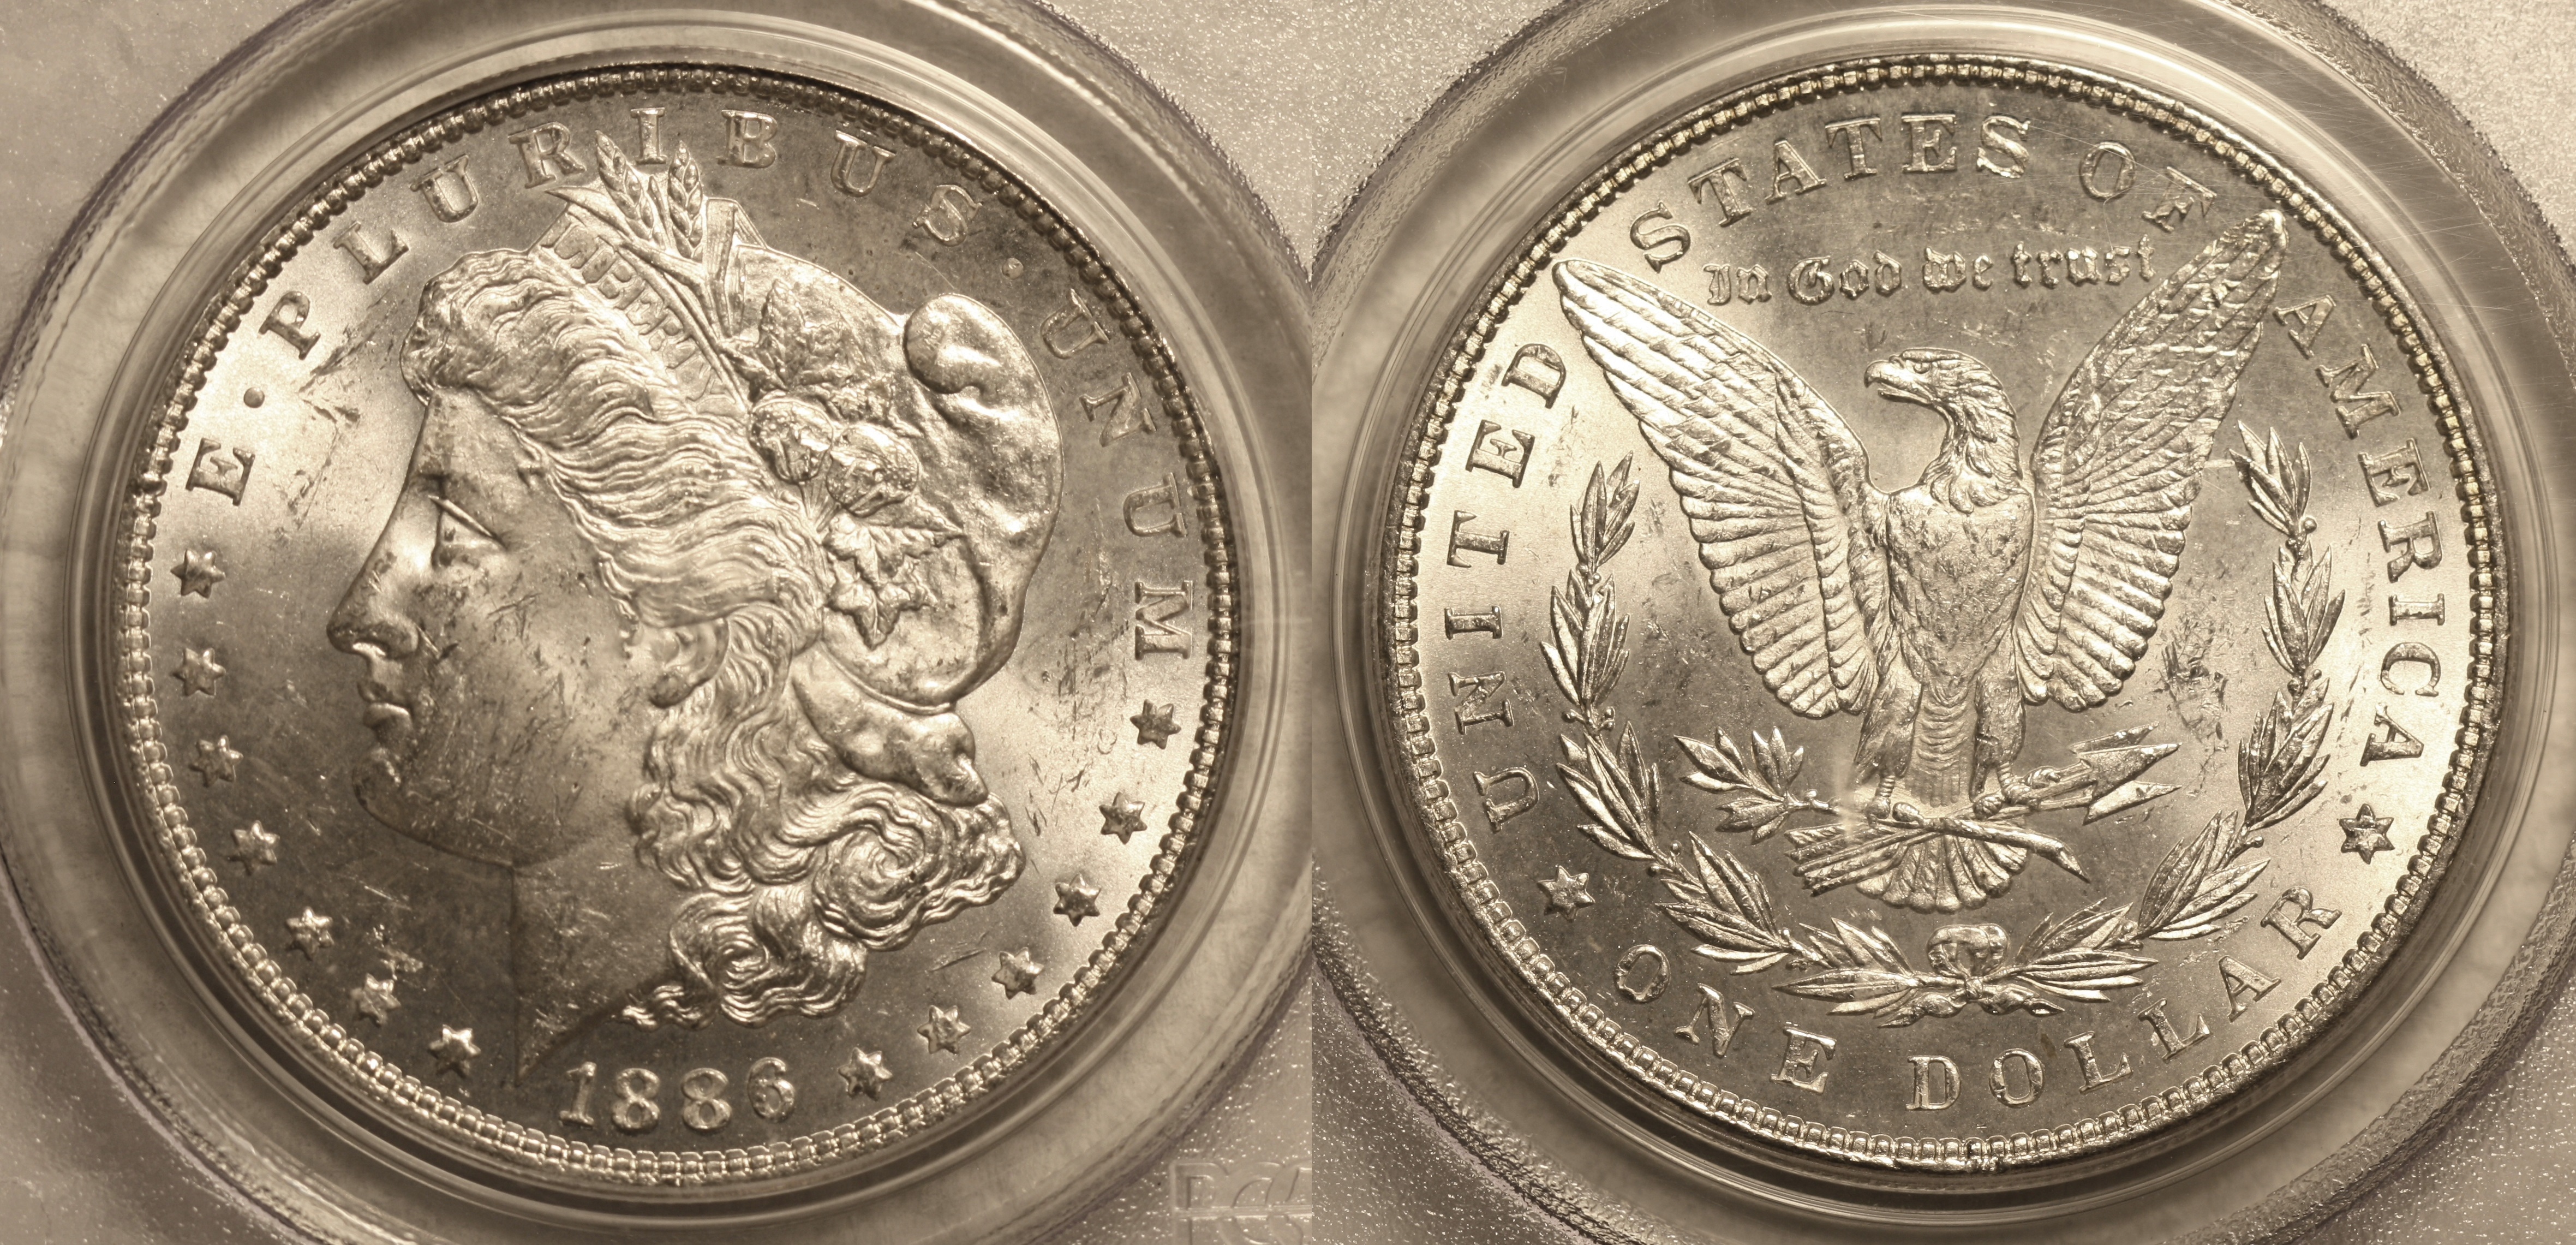 1886 Morgan Silver Dollar PCGS MS-63 #a camera